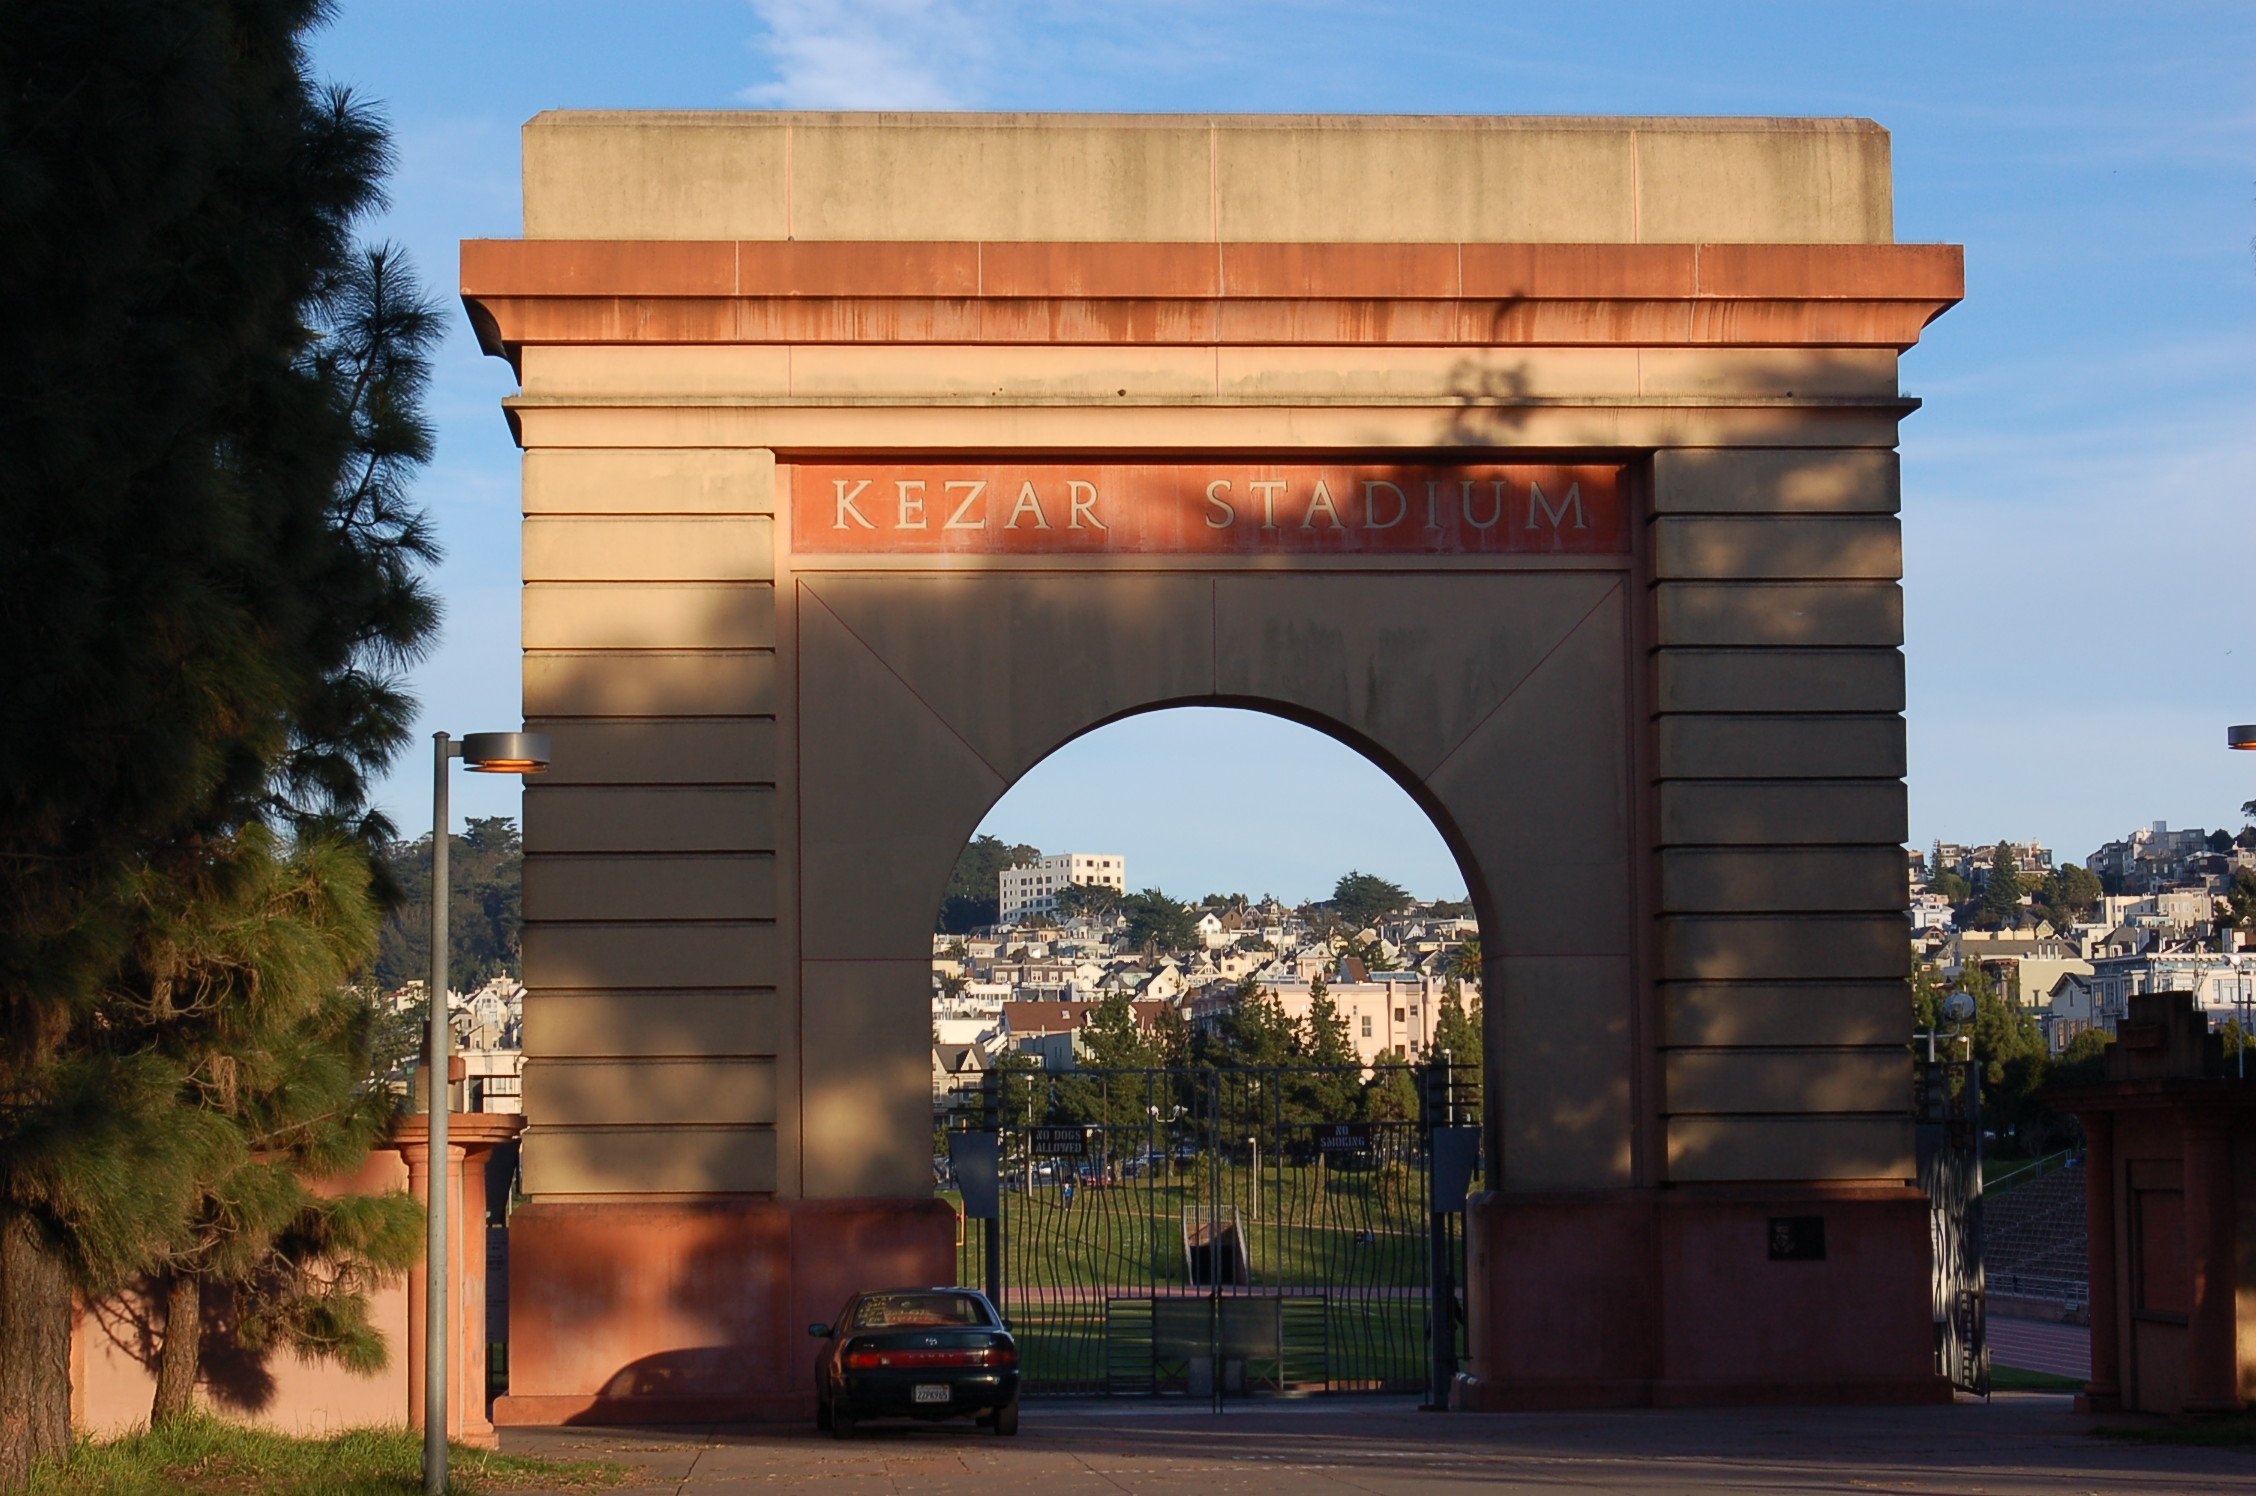 Kezar Stadium © Ashleigh Nushawg/flickr